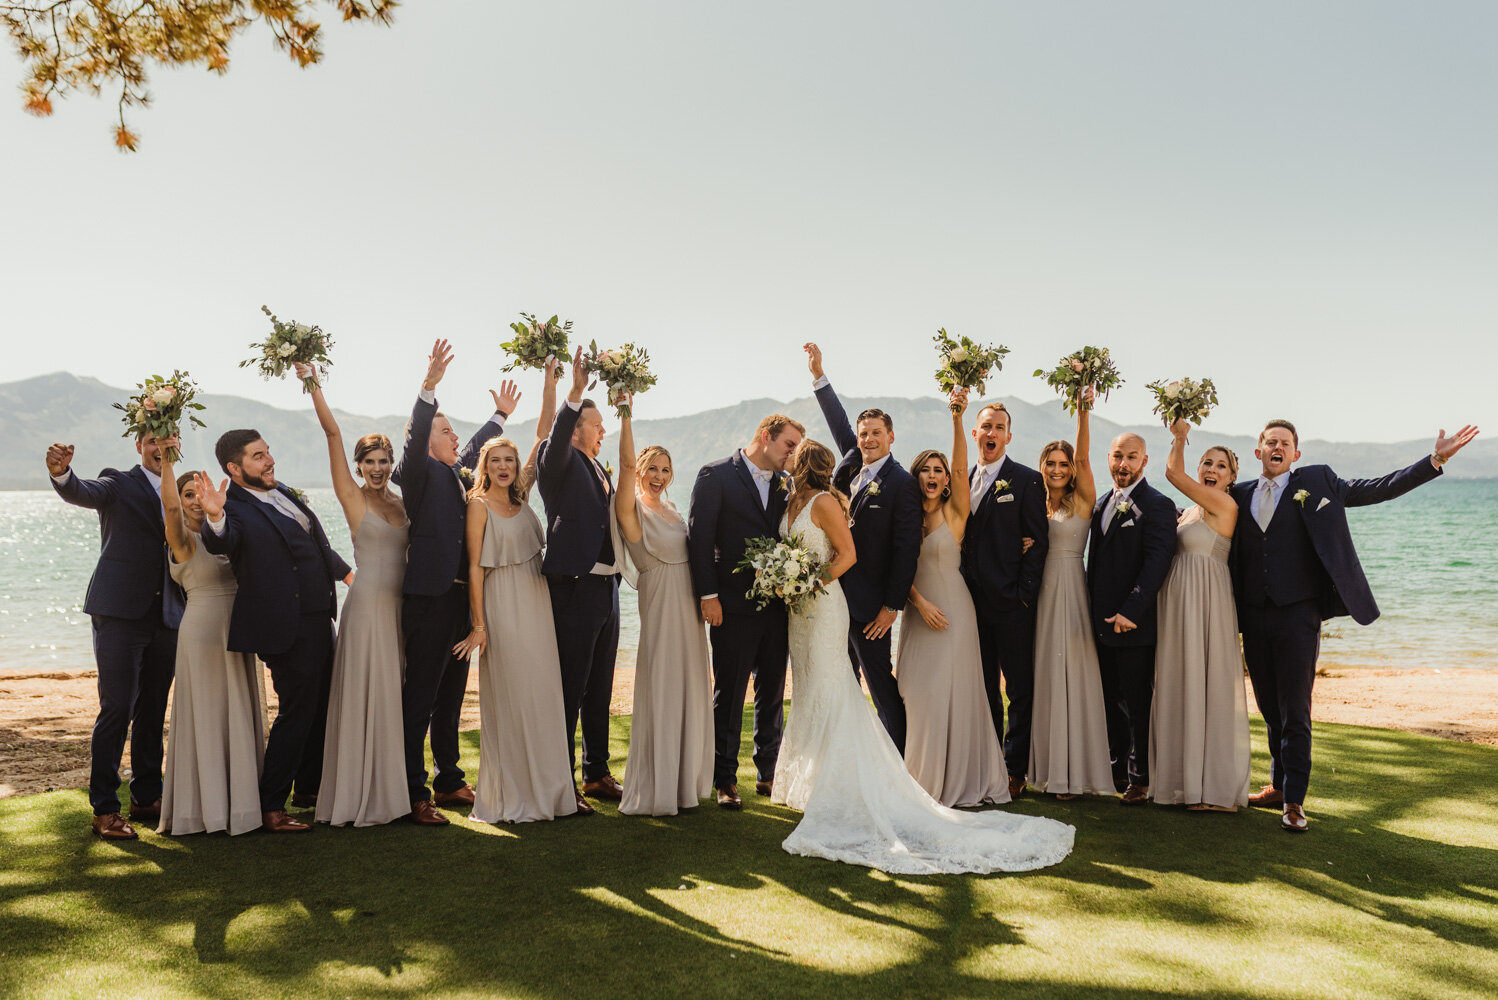 Edgewood Tahoe Wedding, bridal party photo